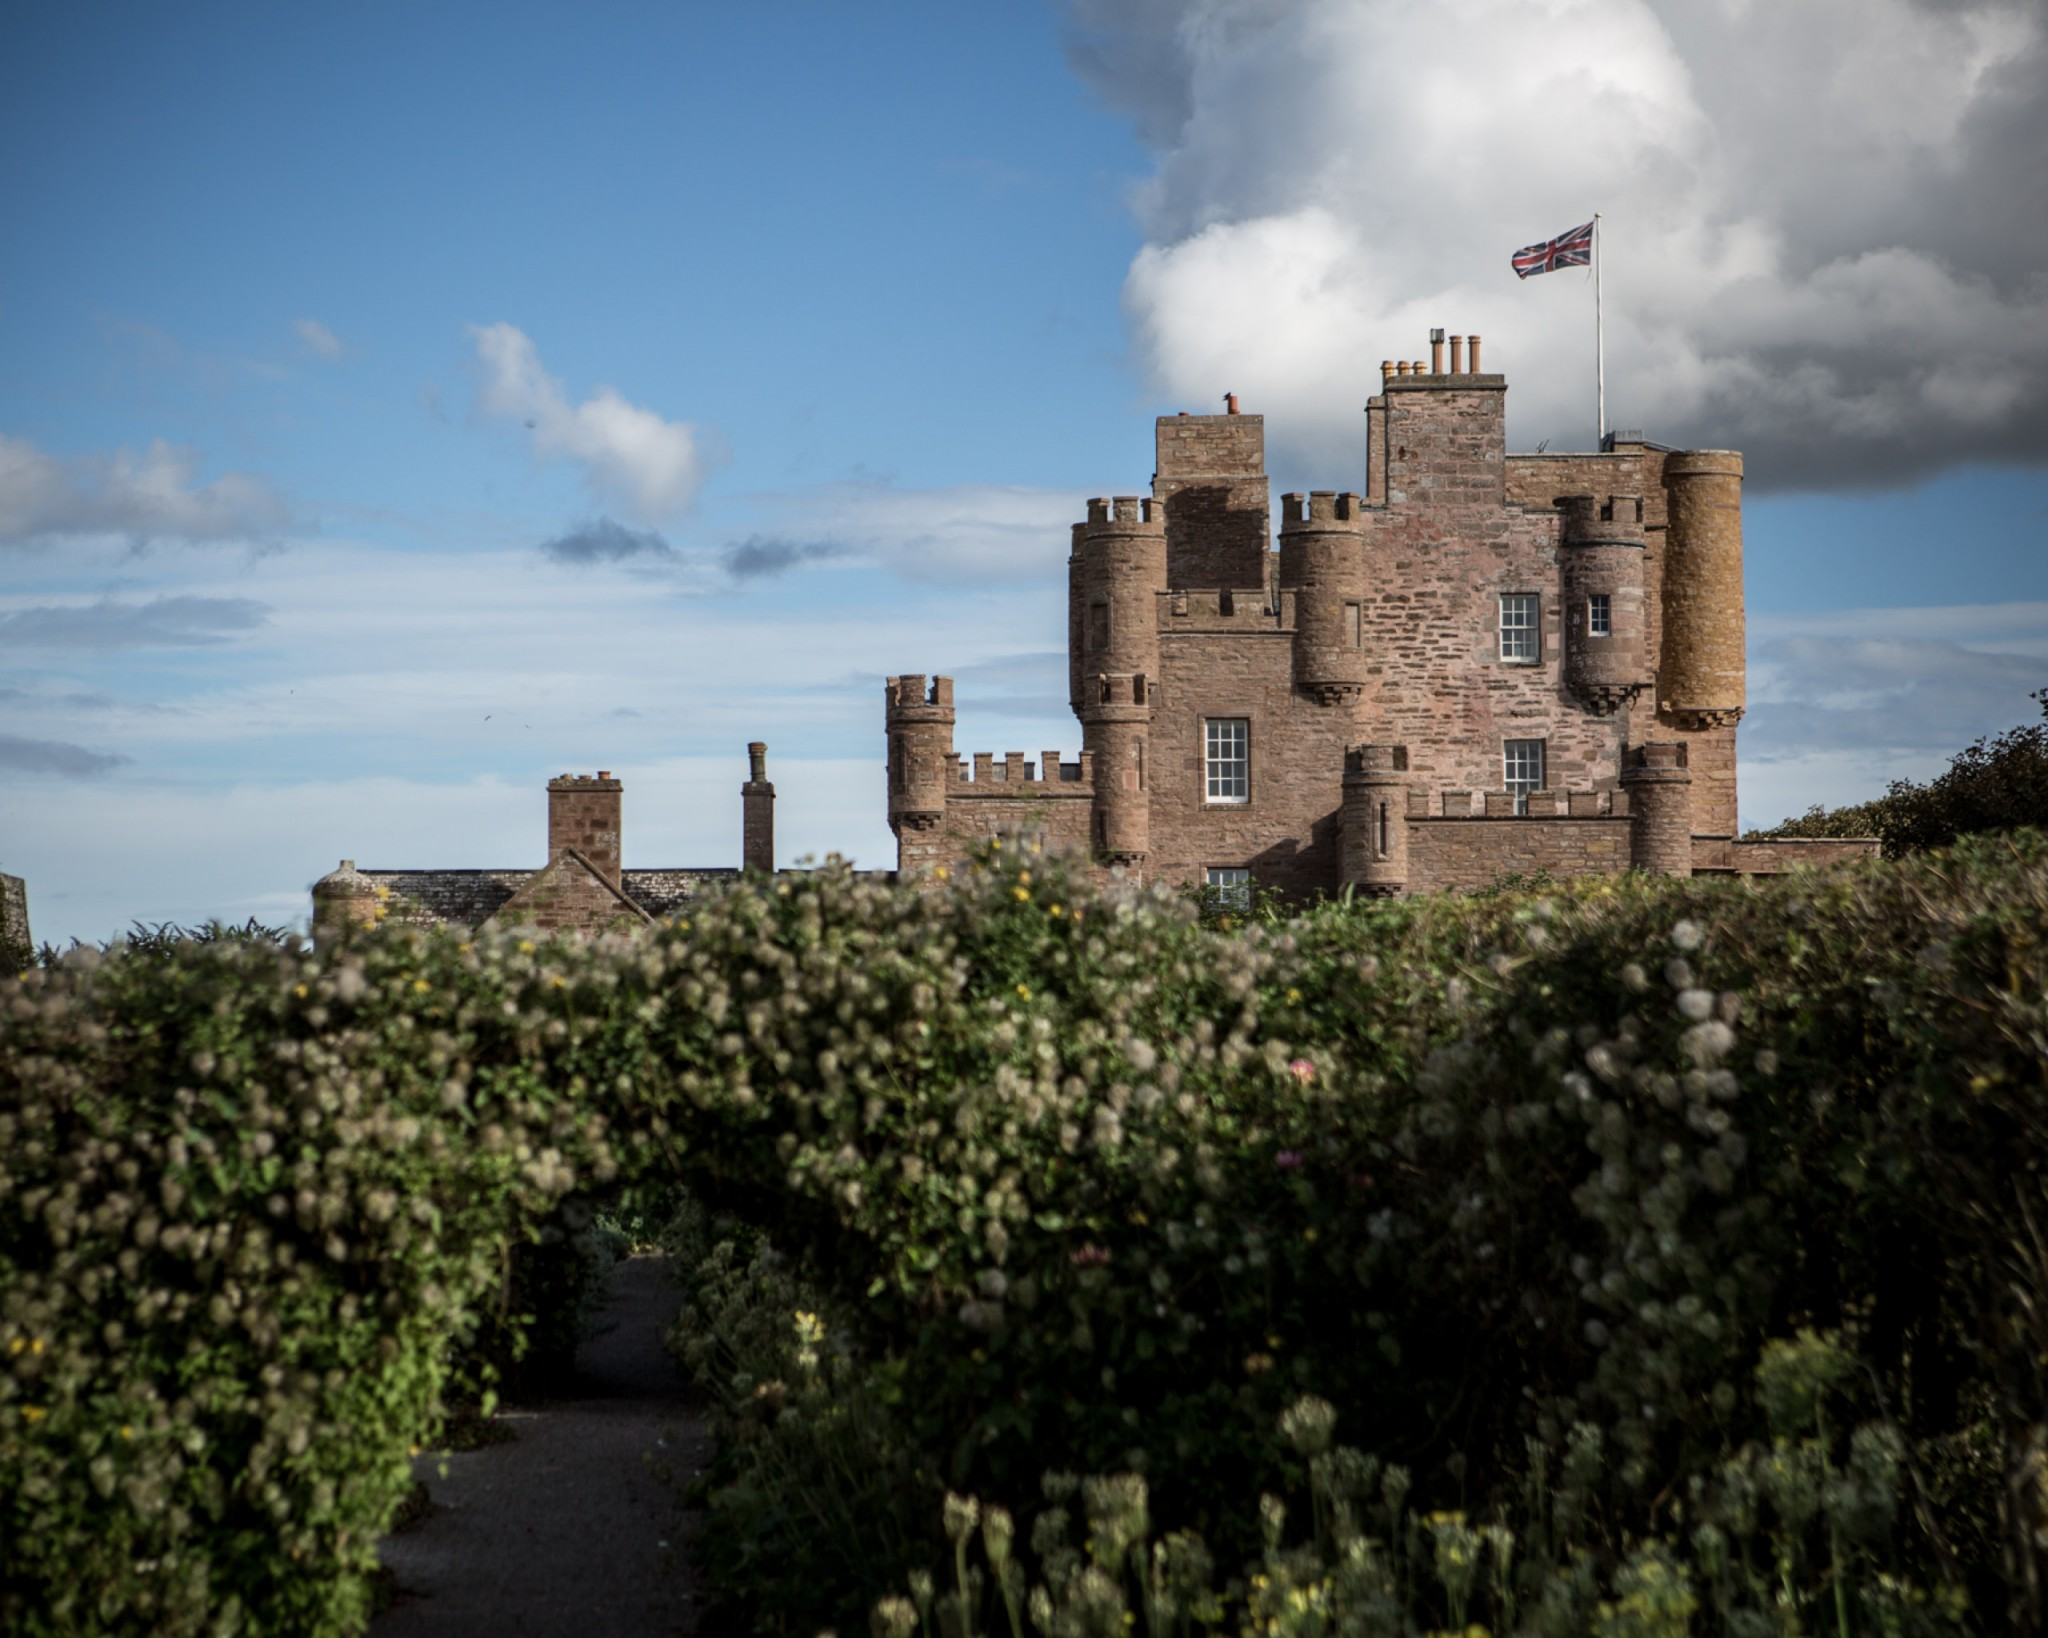 Image of the castle of mey with surrounding garden